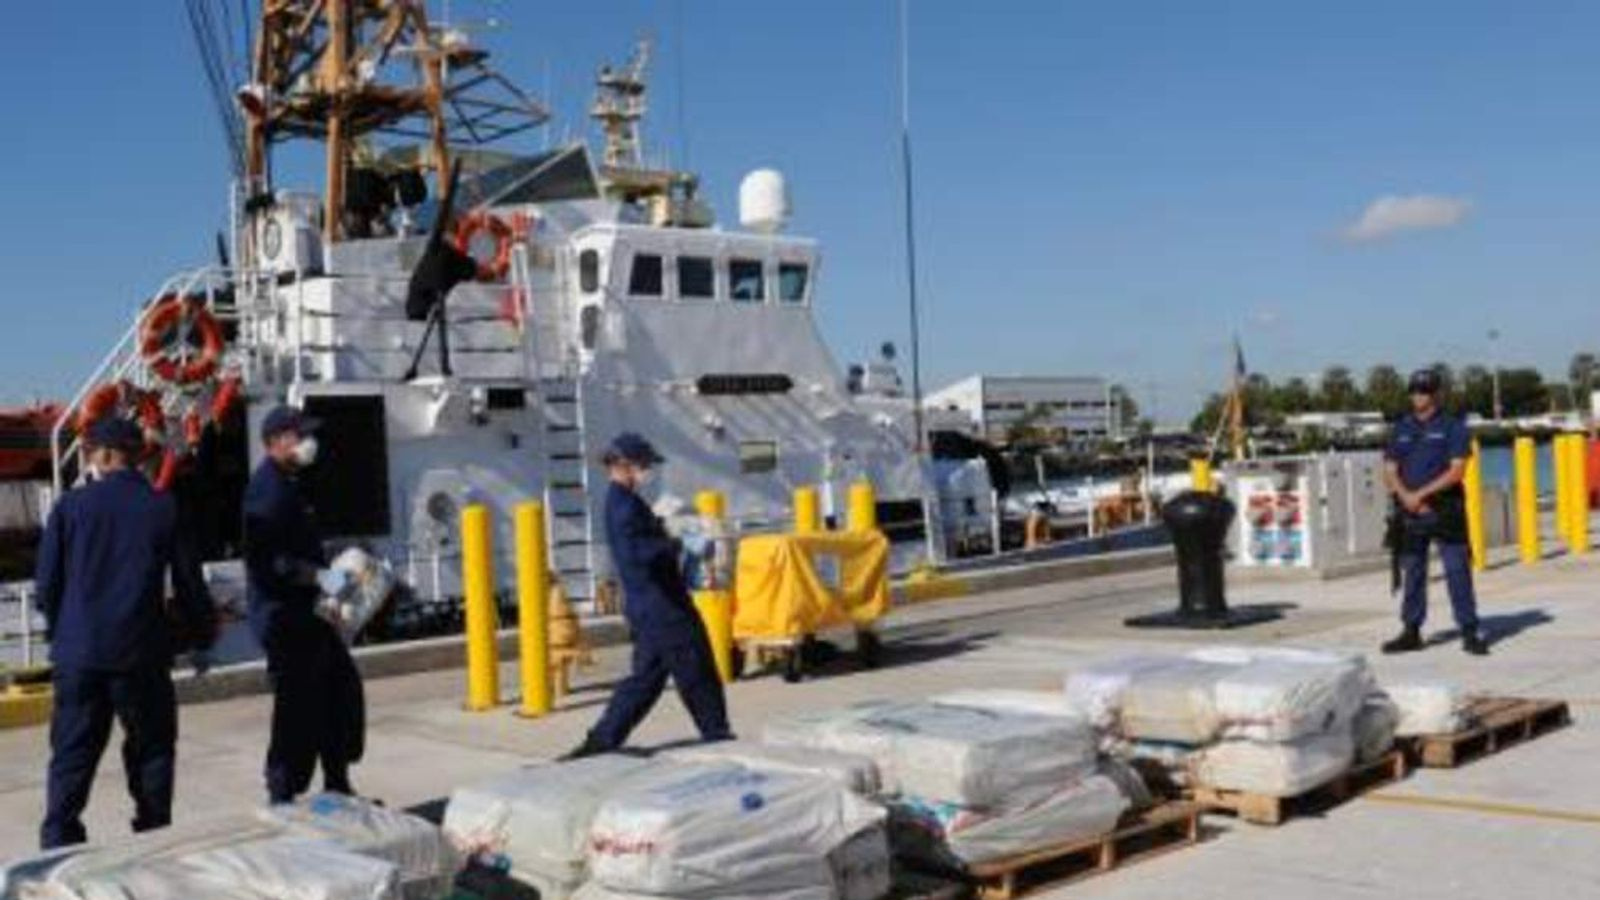 Members of the US Coast Guard offload the cocaine haul in Miami Beach